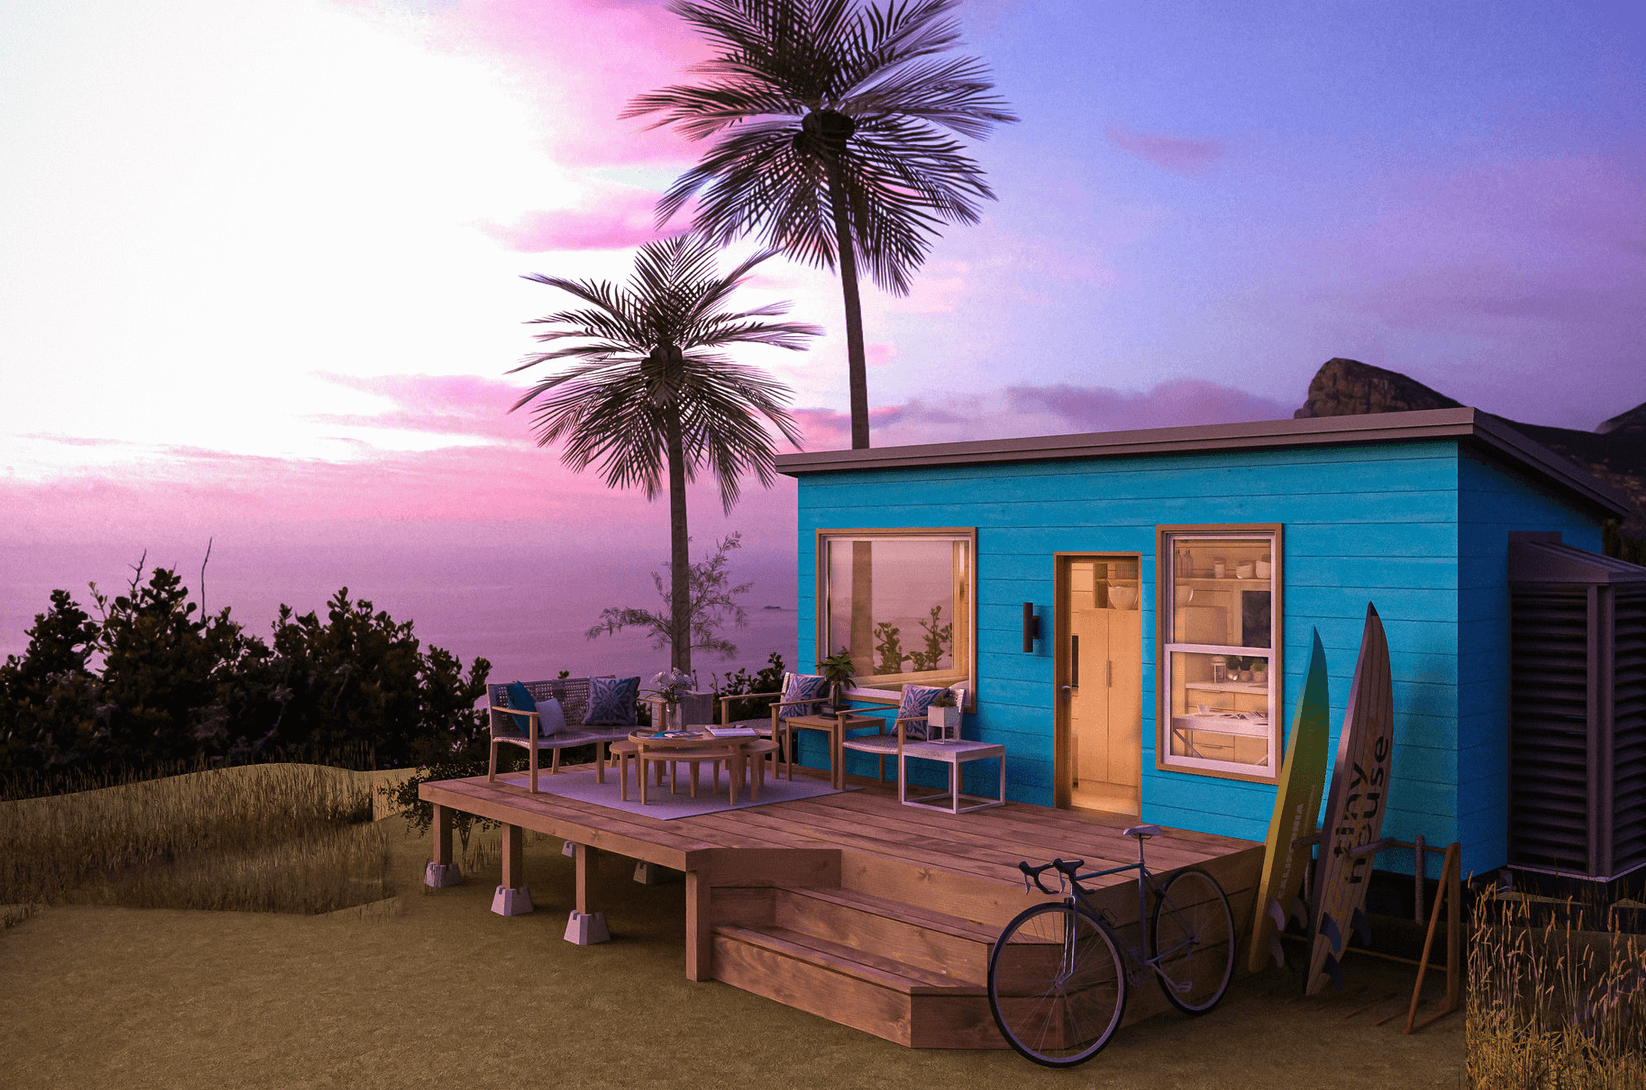 Tiny Home with Palm trees and sunset